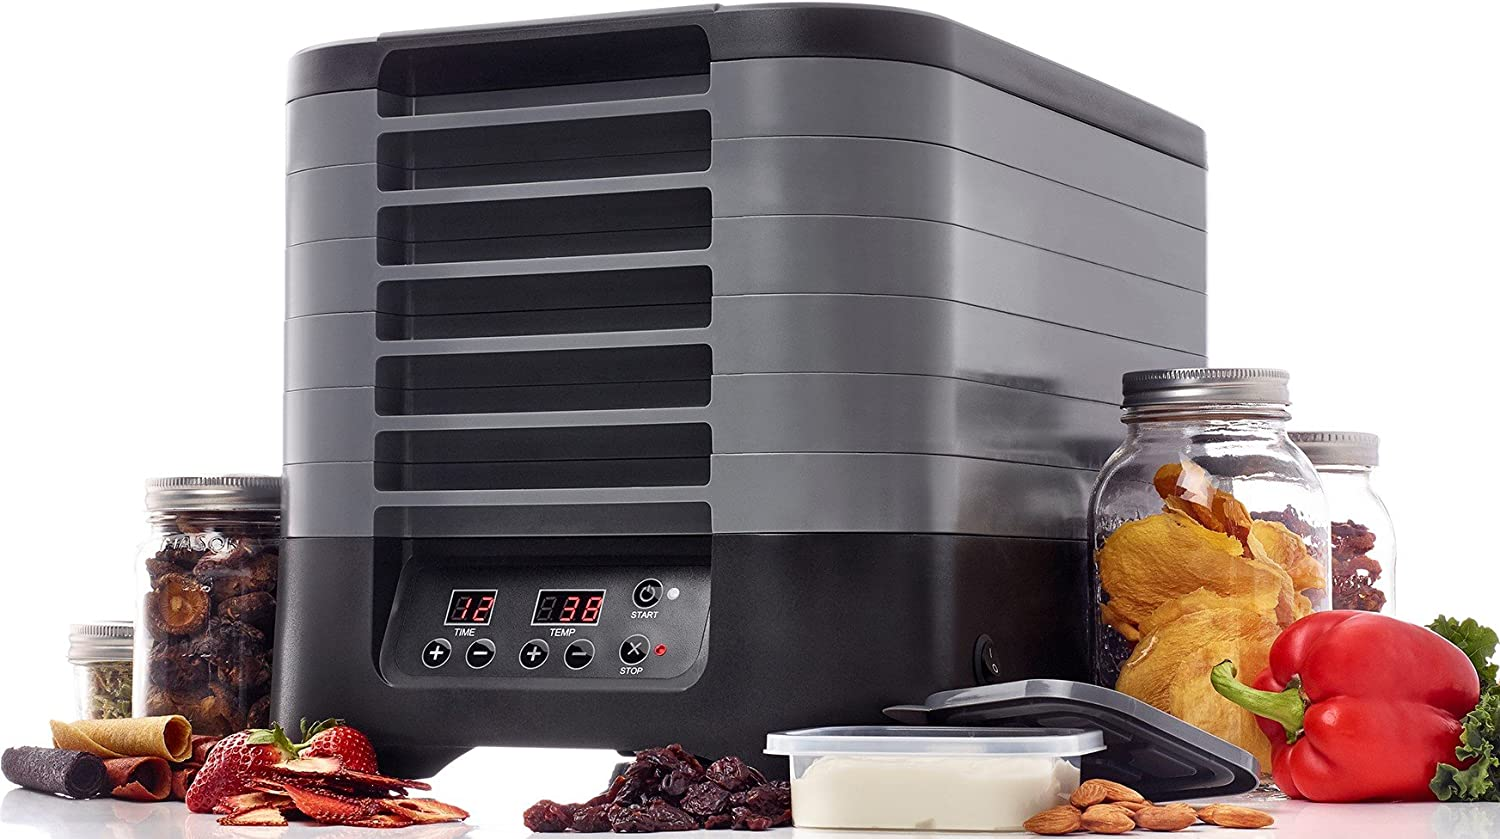 Excalibur STS60B 6-Tray Stackable Electric Food Dehydrator with Digital Control Featuring 48-Hour Timer Includes Mesh Screens Yogurt Cups and Drying Sheets, 6-Tray, Gray